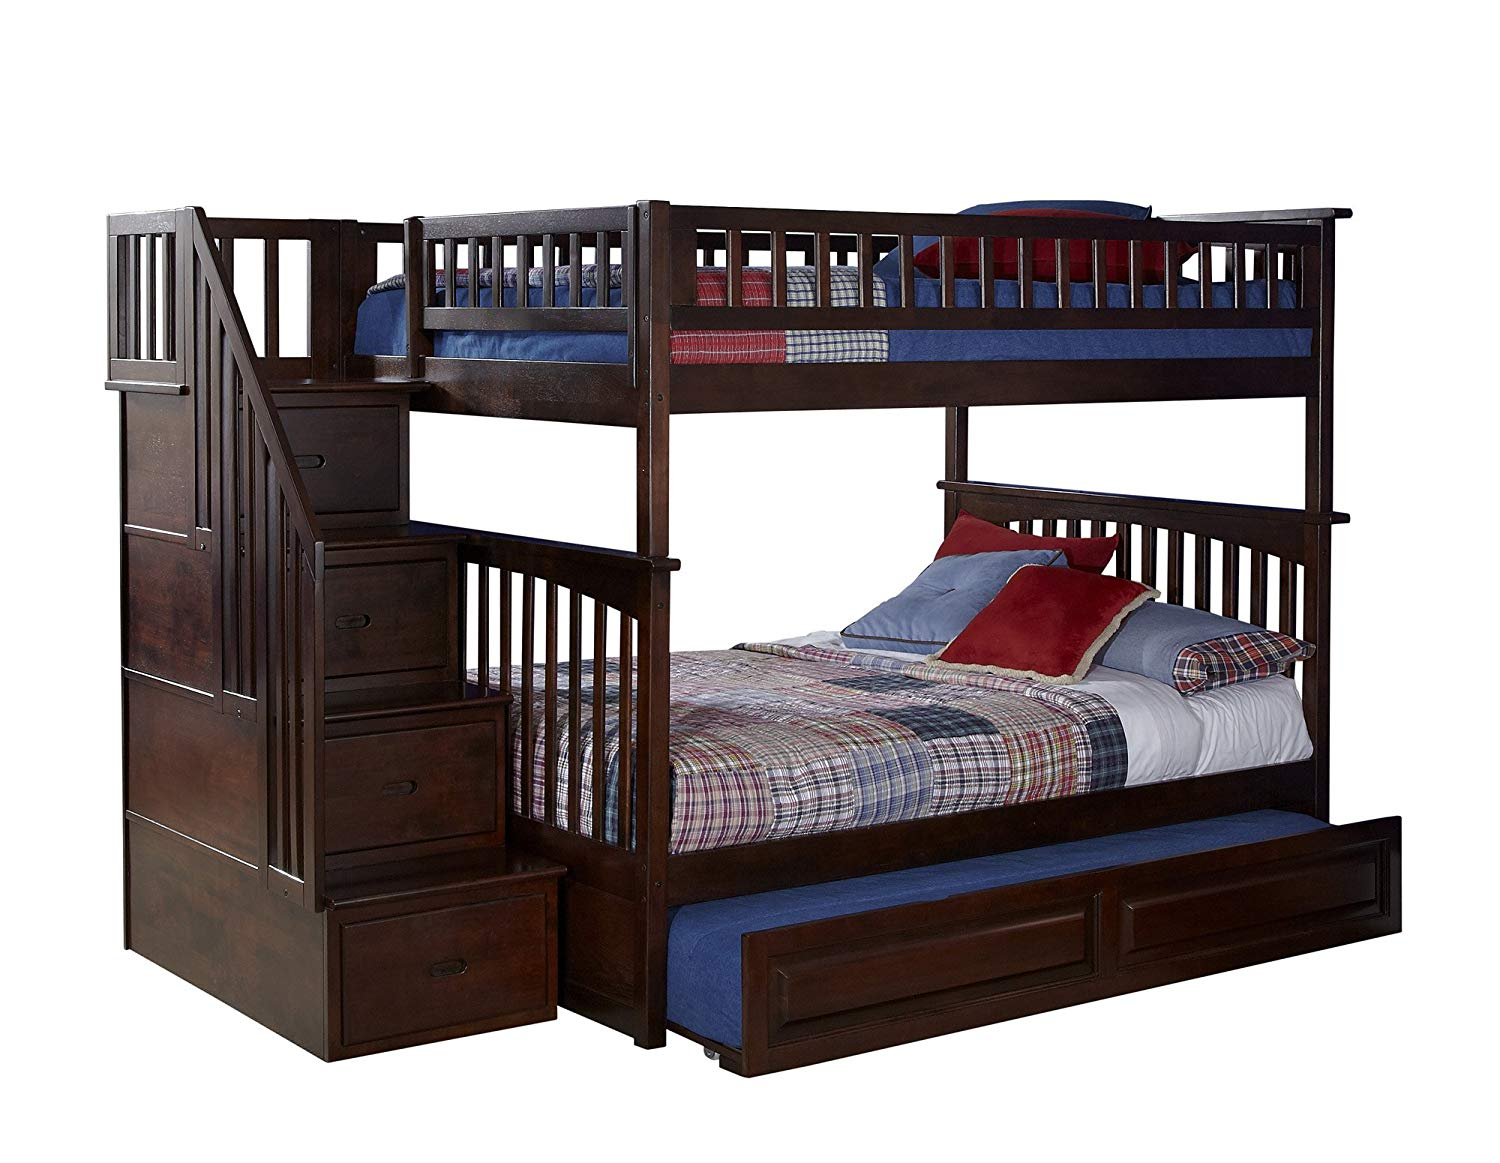 full over full bunk beds with trundle and stairs amazon.com: atlantic furniture columbia staircase bunk bed with trundle bed, GCQEERK